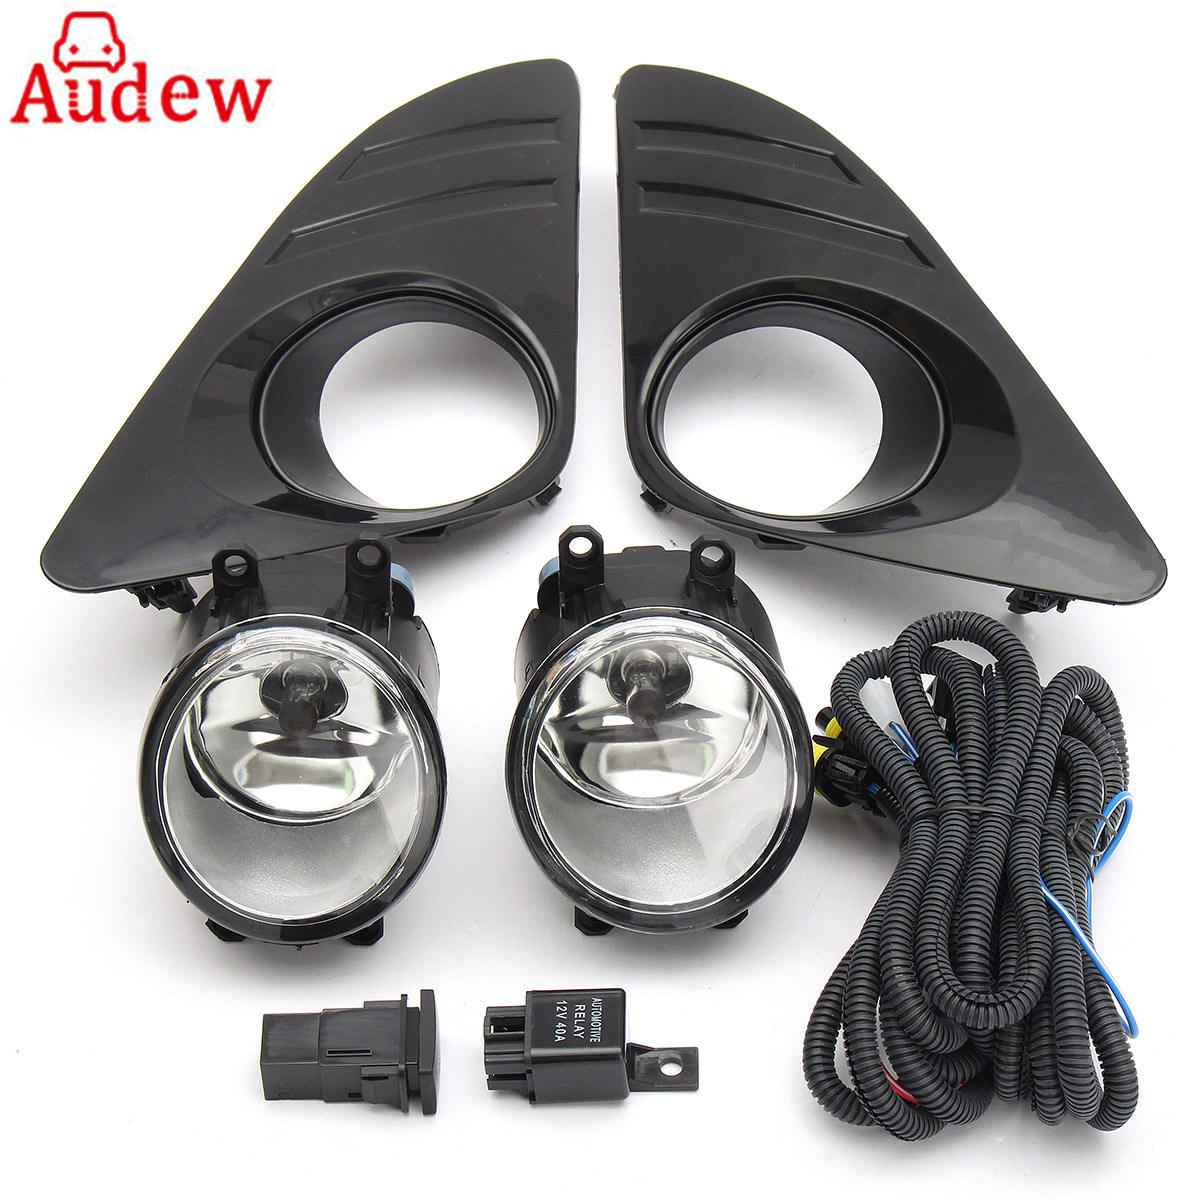 2Pcs Front Car Fog Light Lamp DRL 55W Round Daytime Driving Lights + Switch H11 Bulbs For Toyota Camry 2012 2013 2014 car styling fog lights for toyota camry 2012 2014 pair of 12v 55w front fog lights bumper lamps daytime running lights